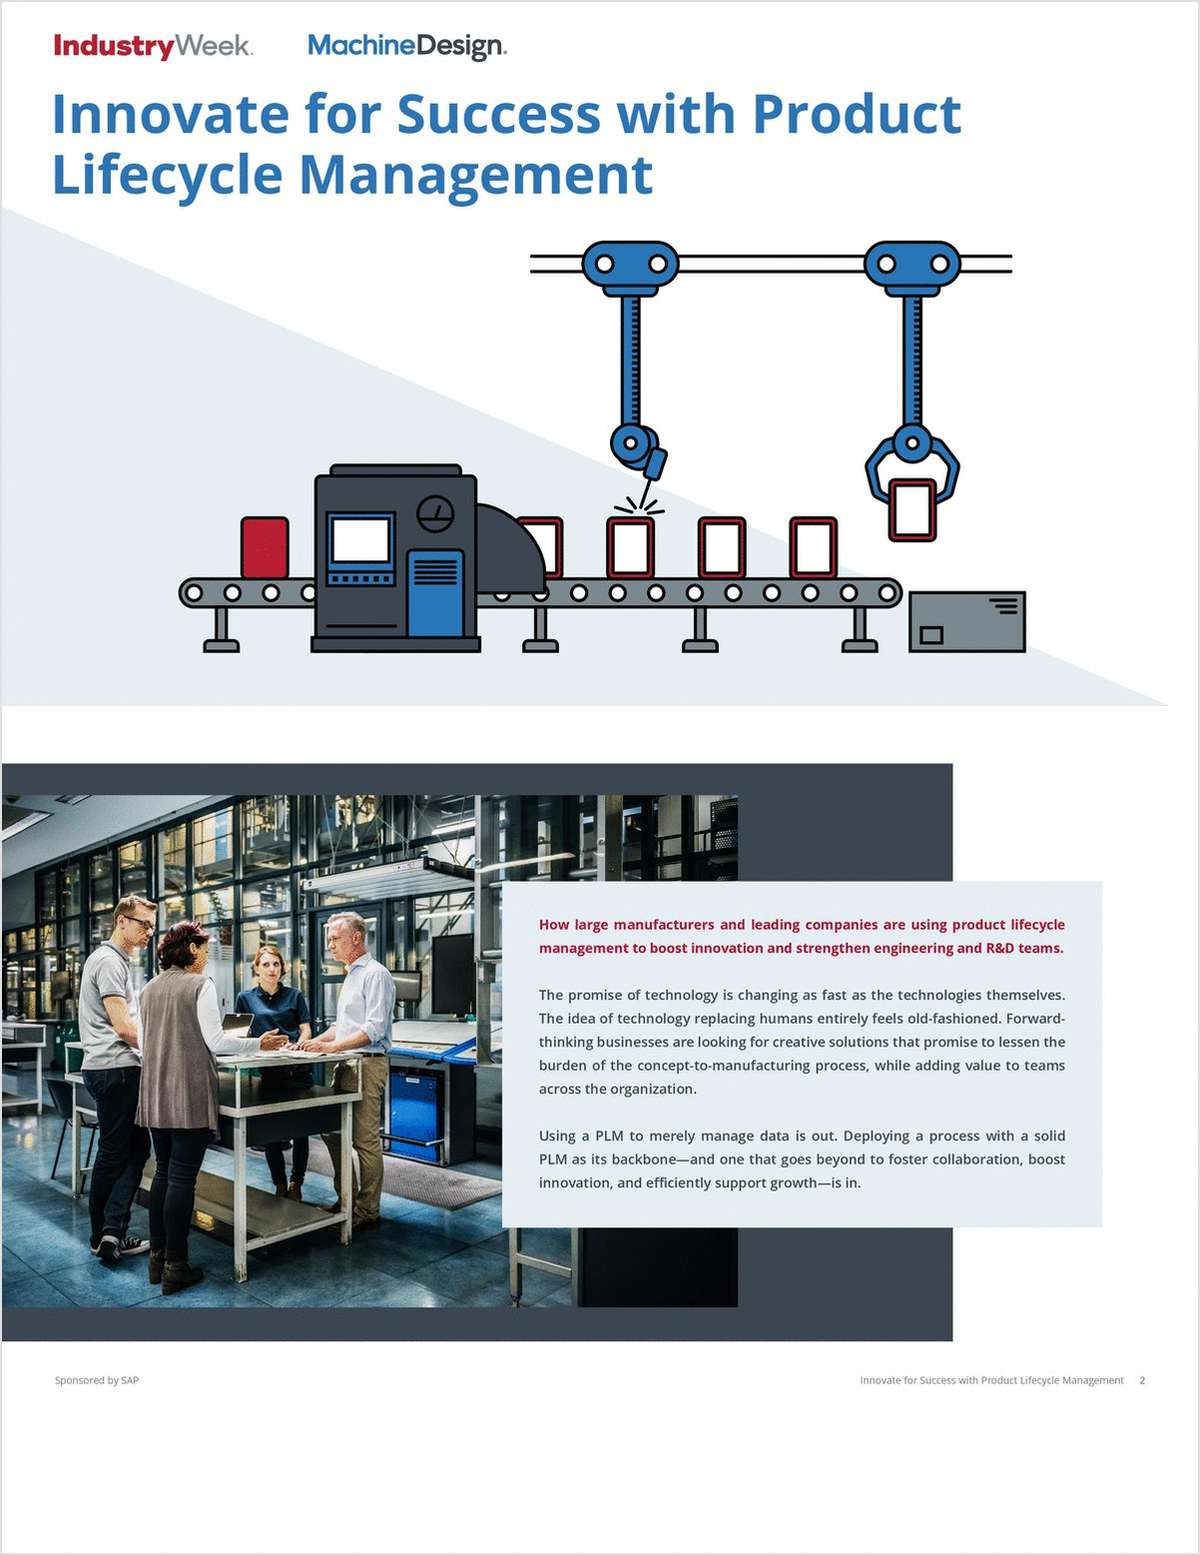 Innovate for Success with Product Lifecycle Management